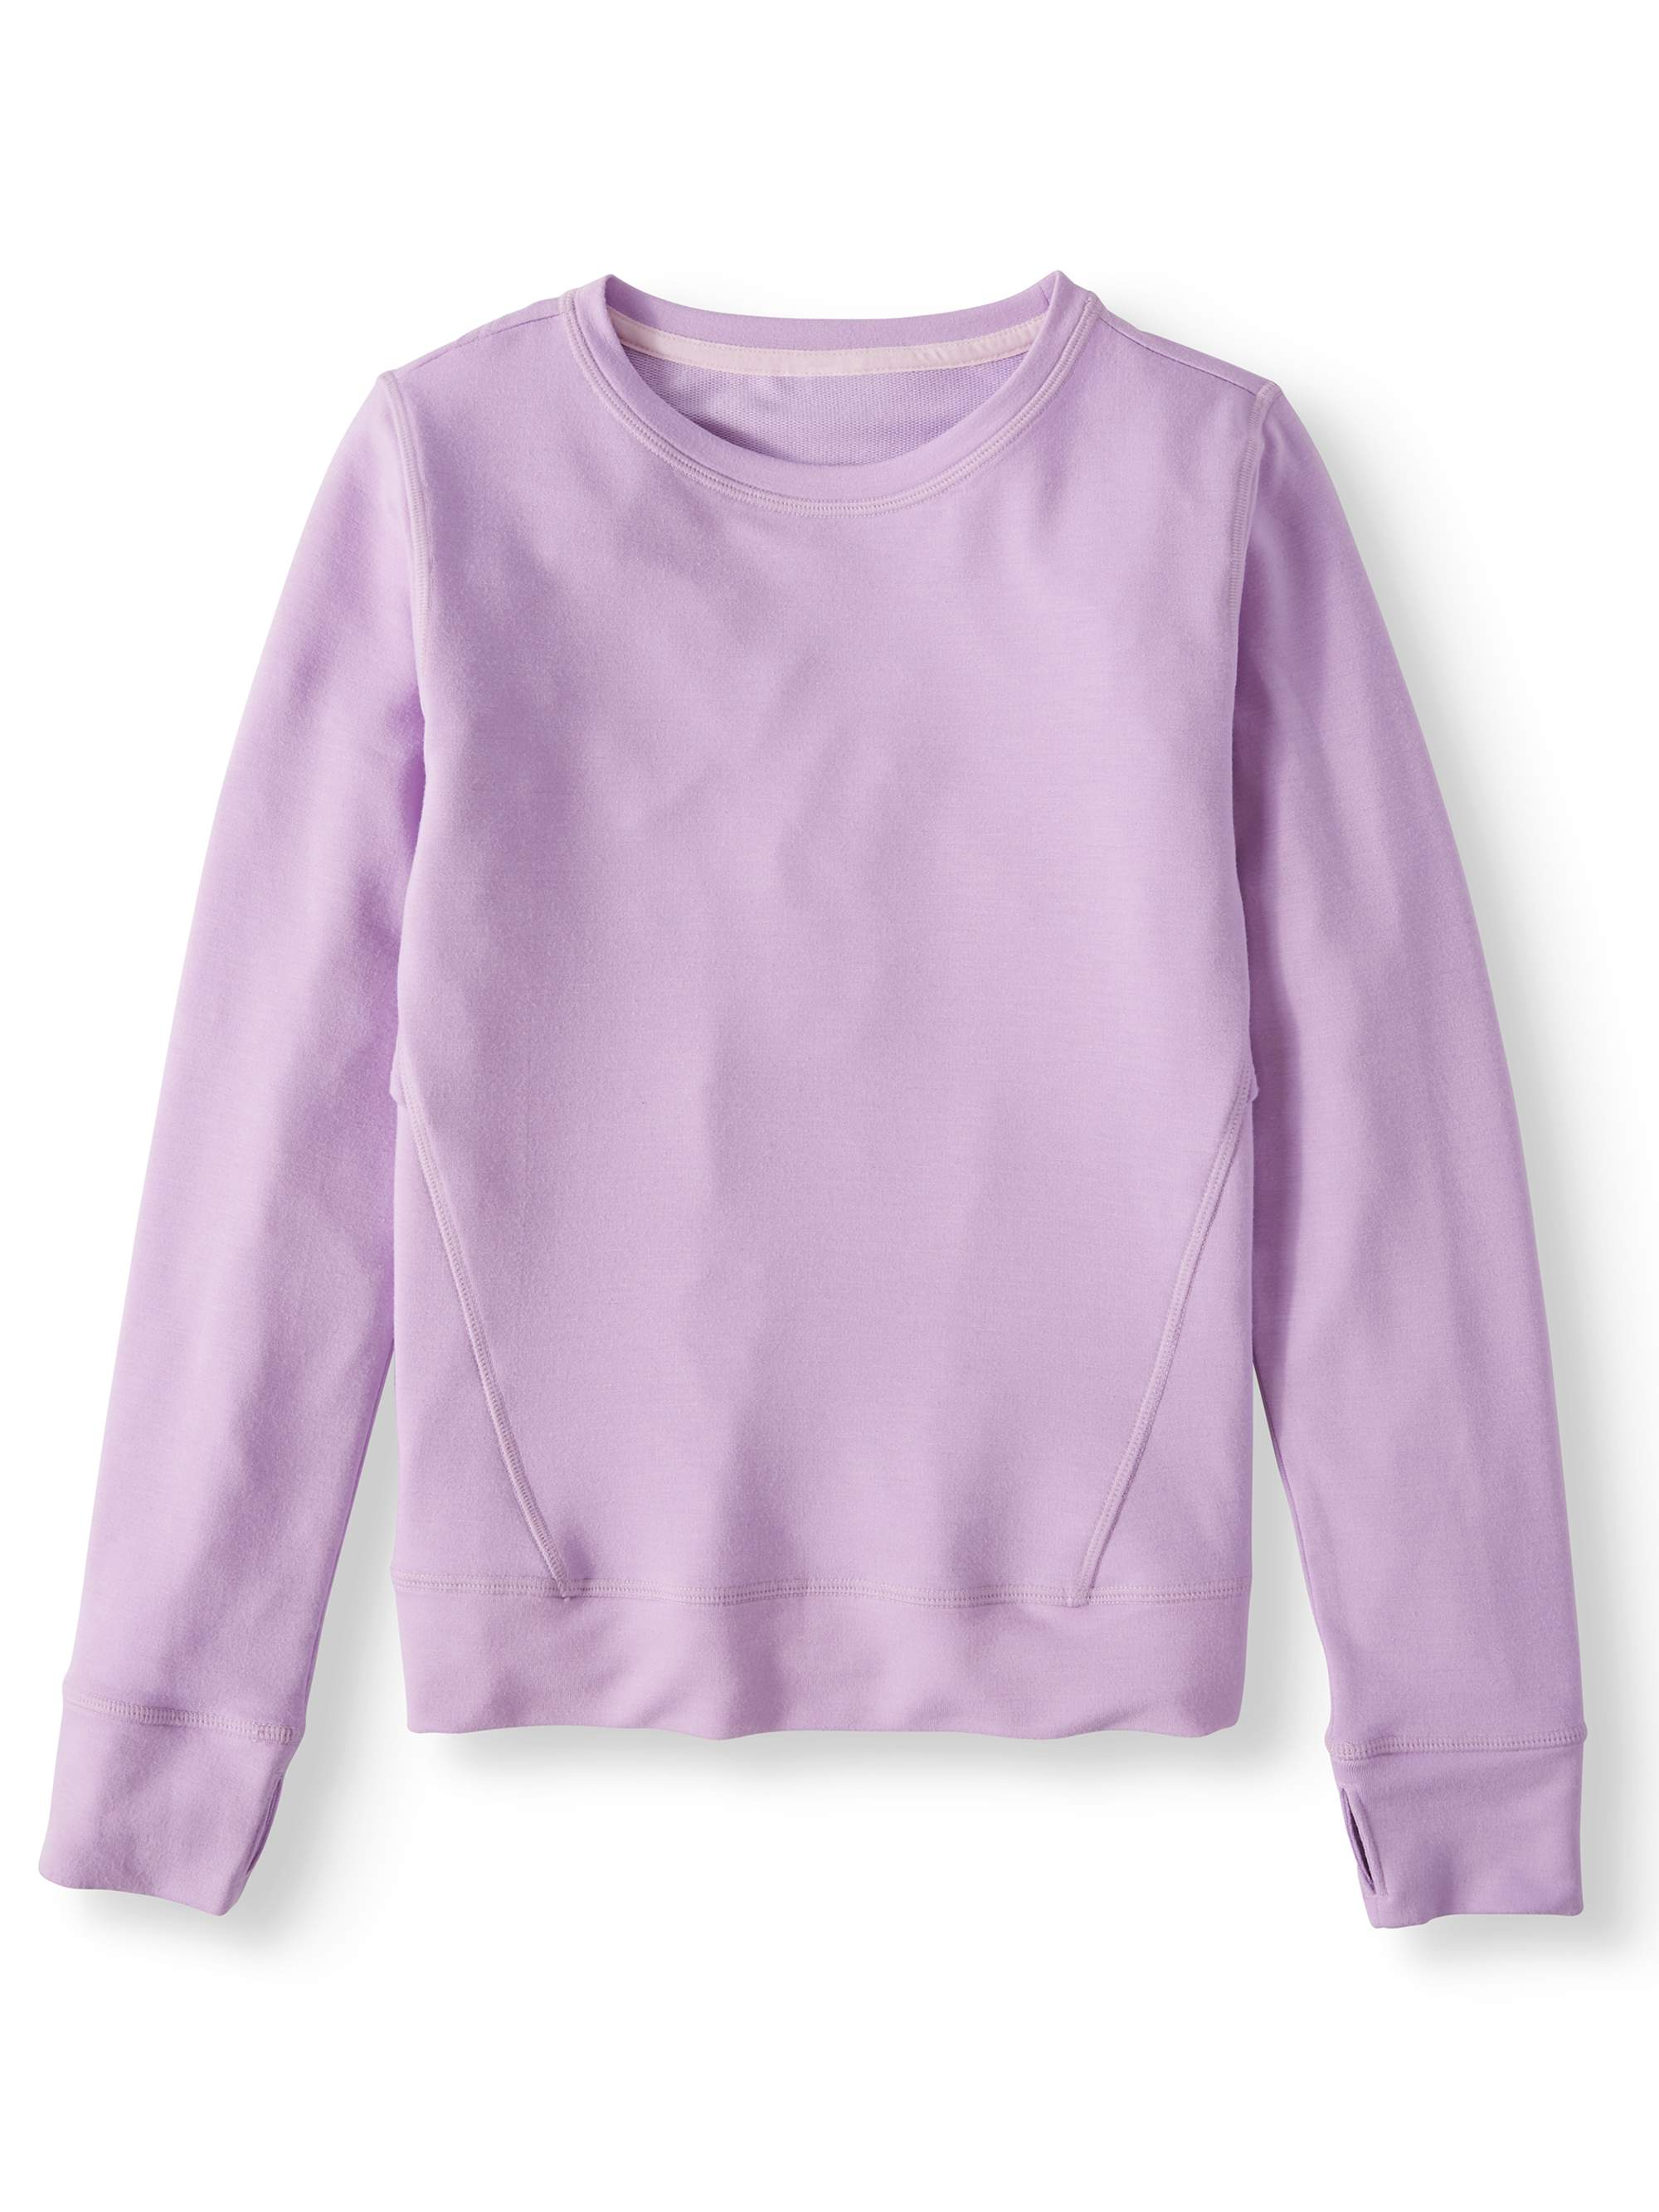 Ruffled Back Pullover Sweatshirt (Little Girls & Big Girls)